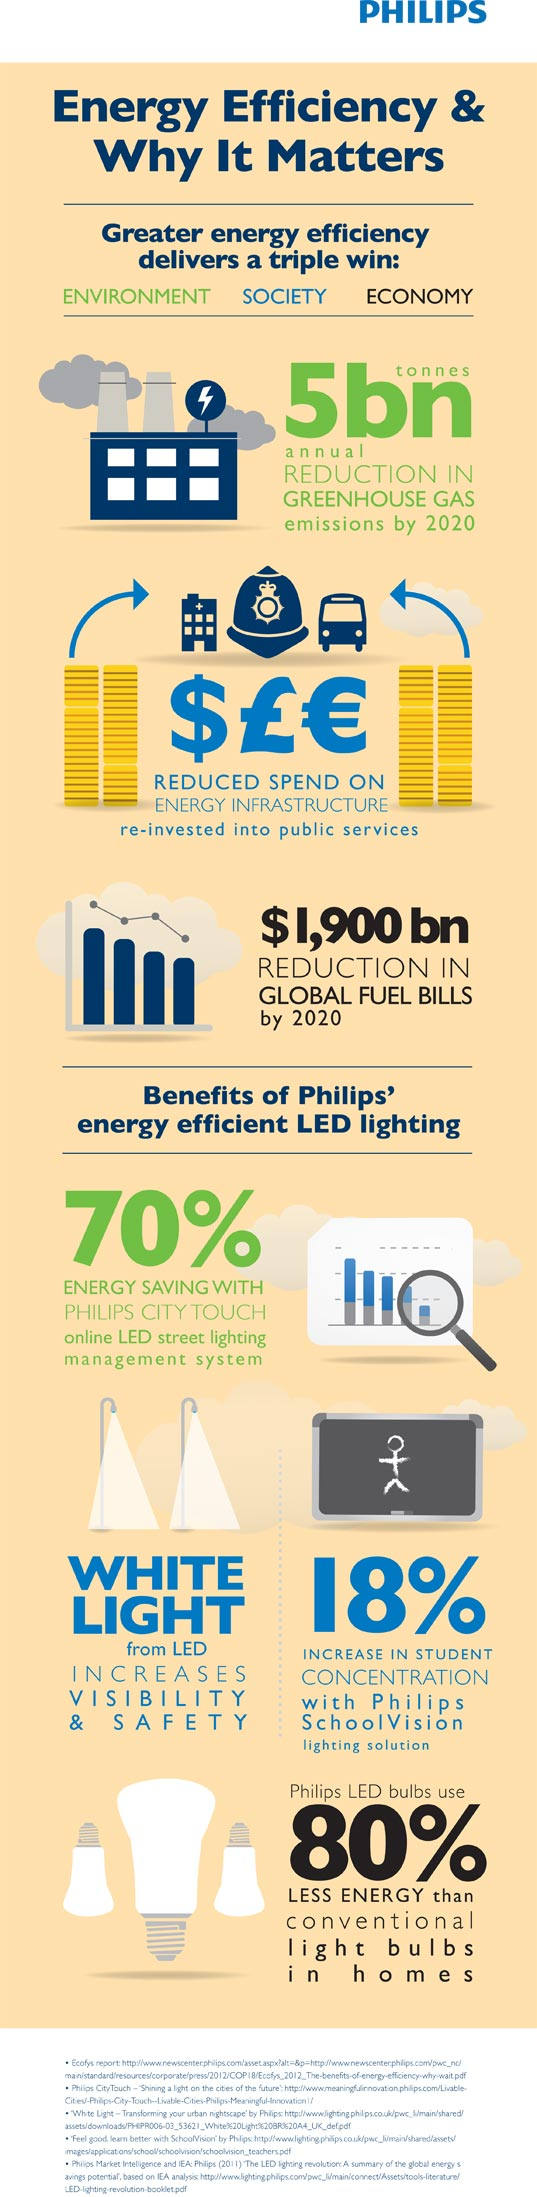 Why Energy Efficiency matters- infographic (1)